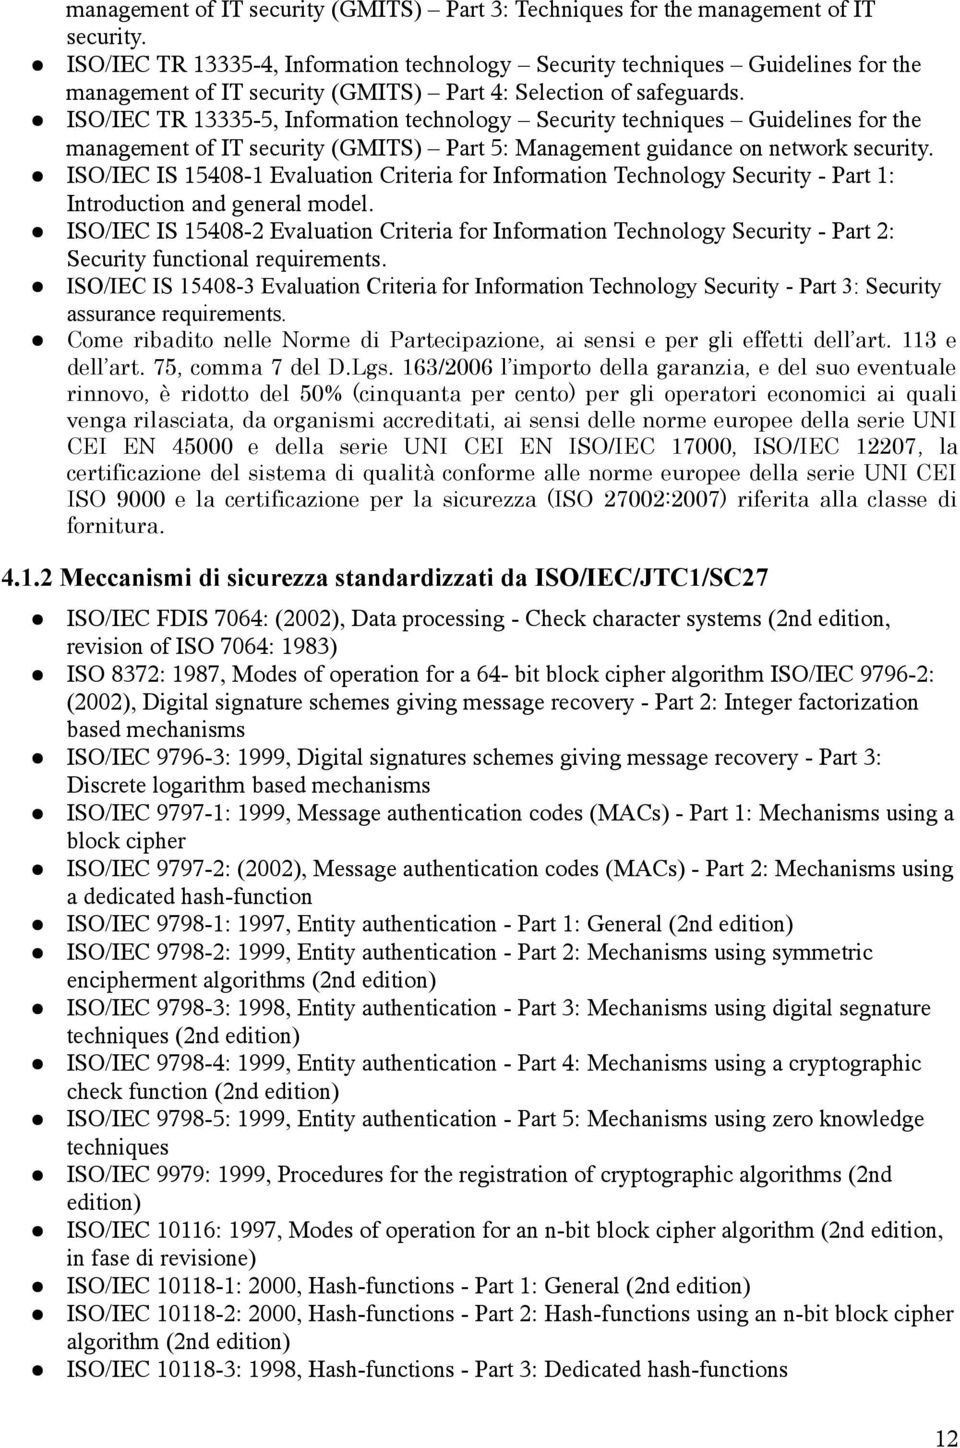 ISO/IEC TR 13335-5, Information technology Security techniques Guidelines for the management of IT security (GMITS) Part 5: Management guidance on network security.